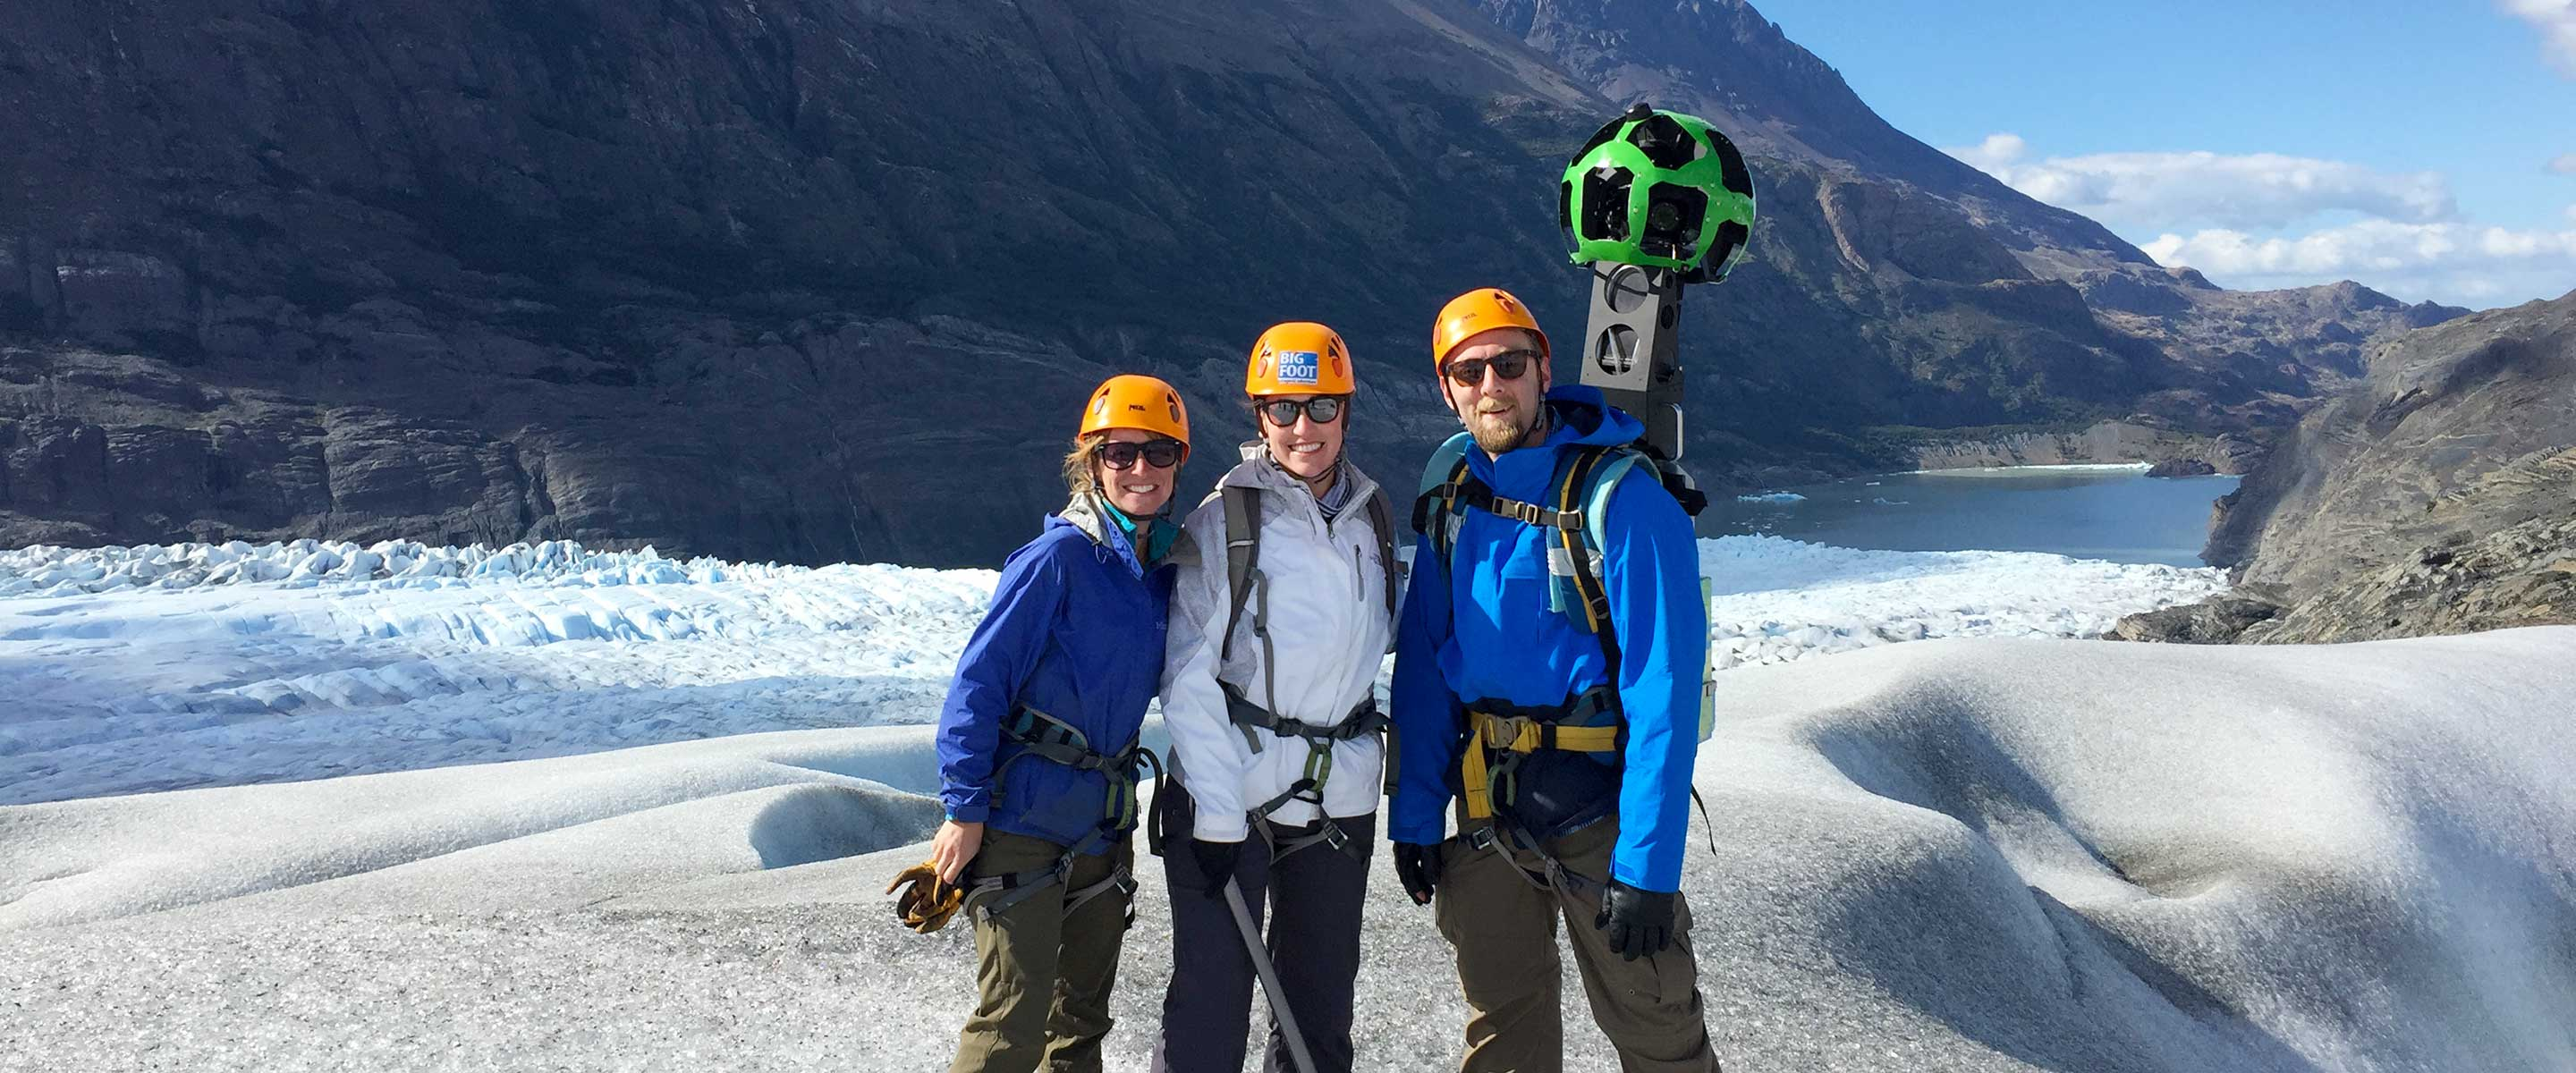 Carrying Google Trekker camera in Torres del Paine National Park